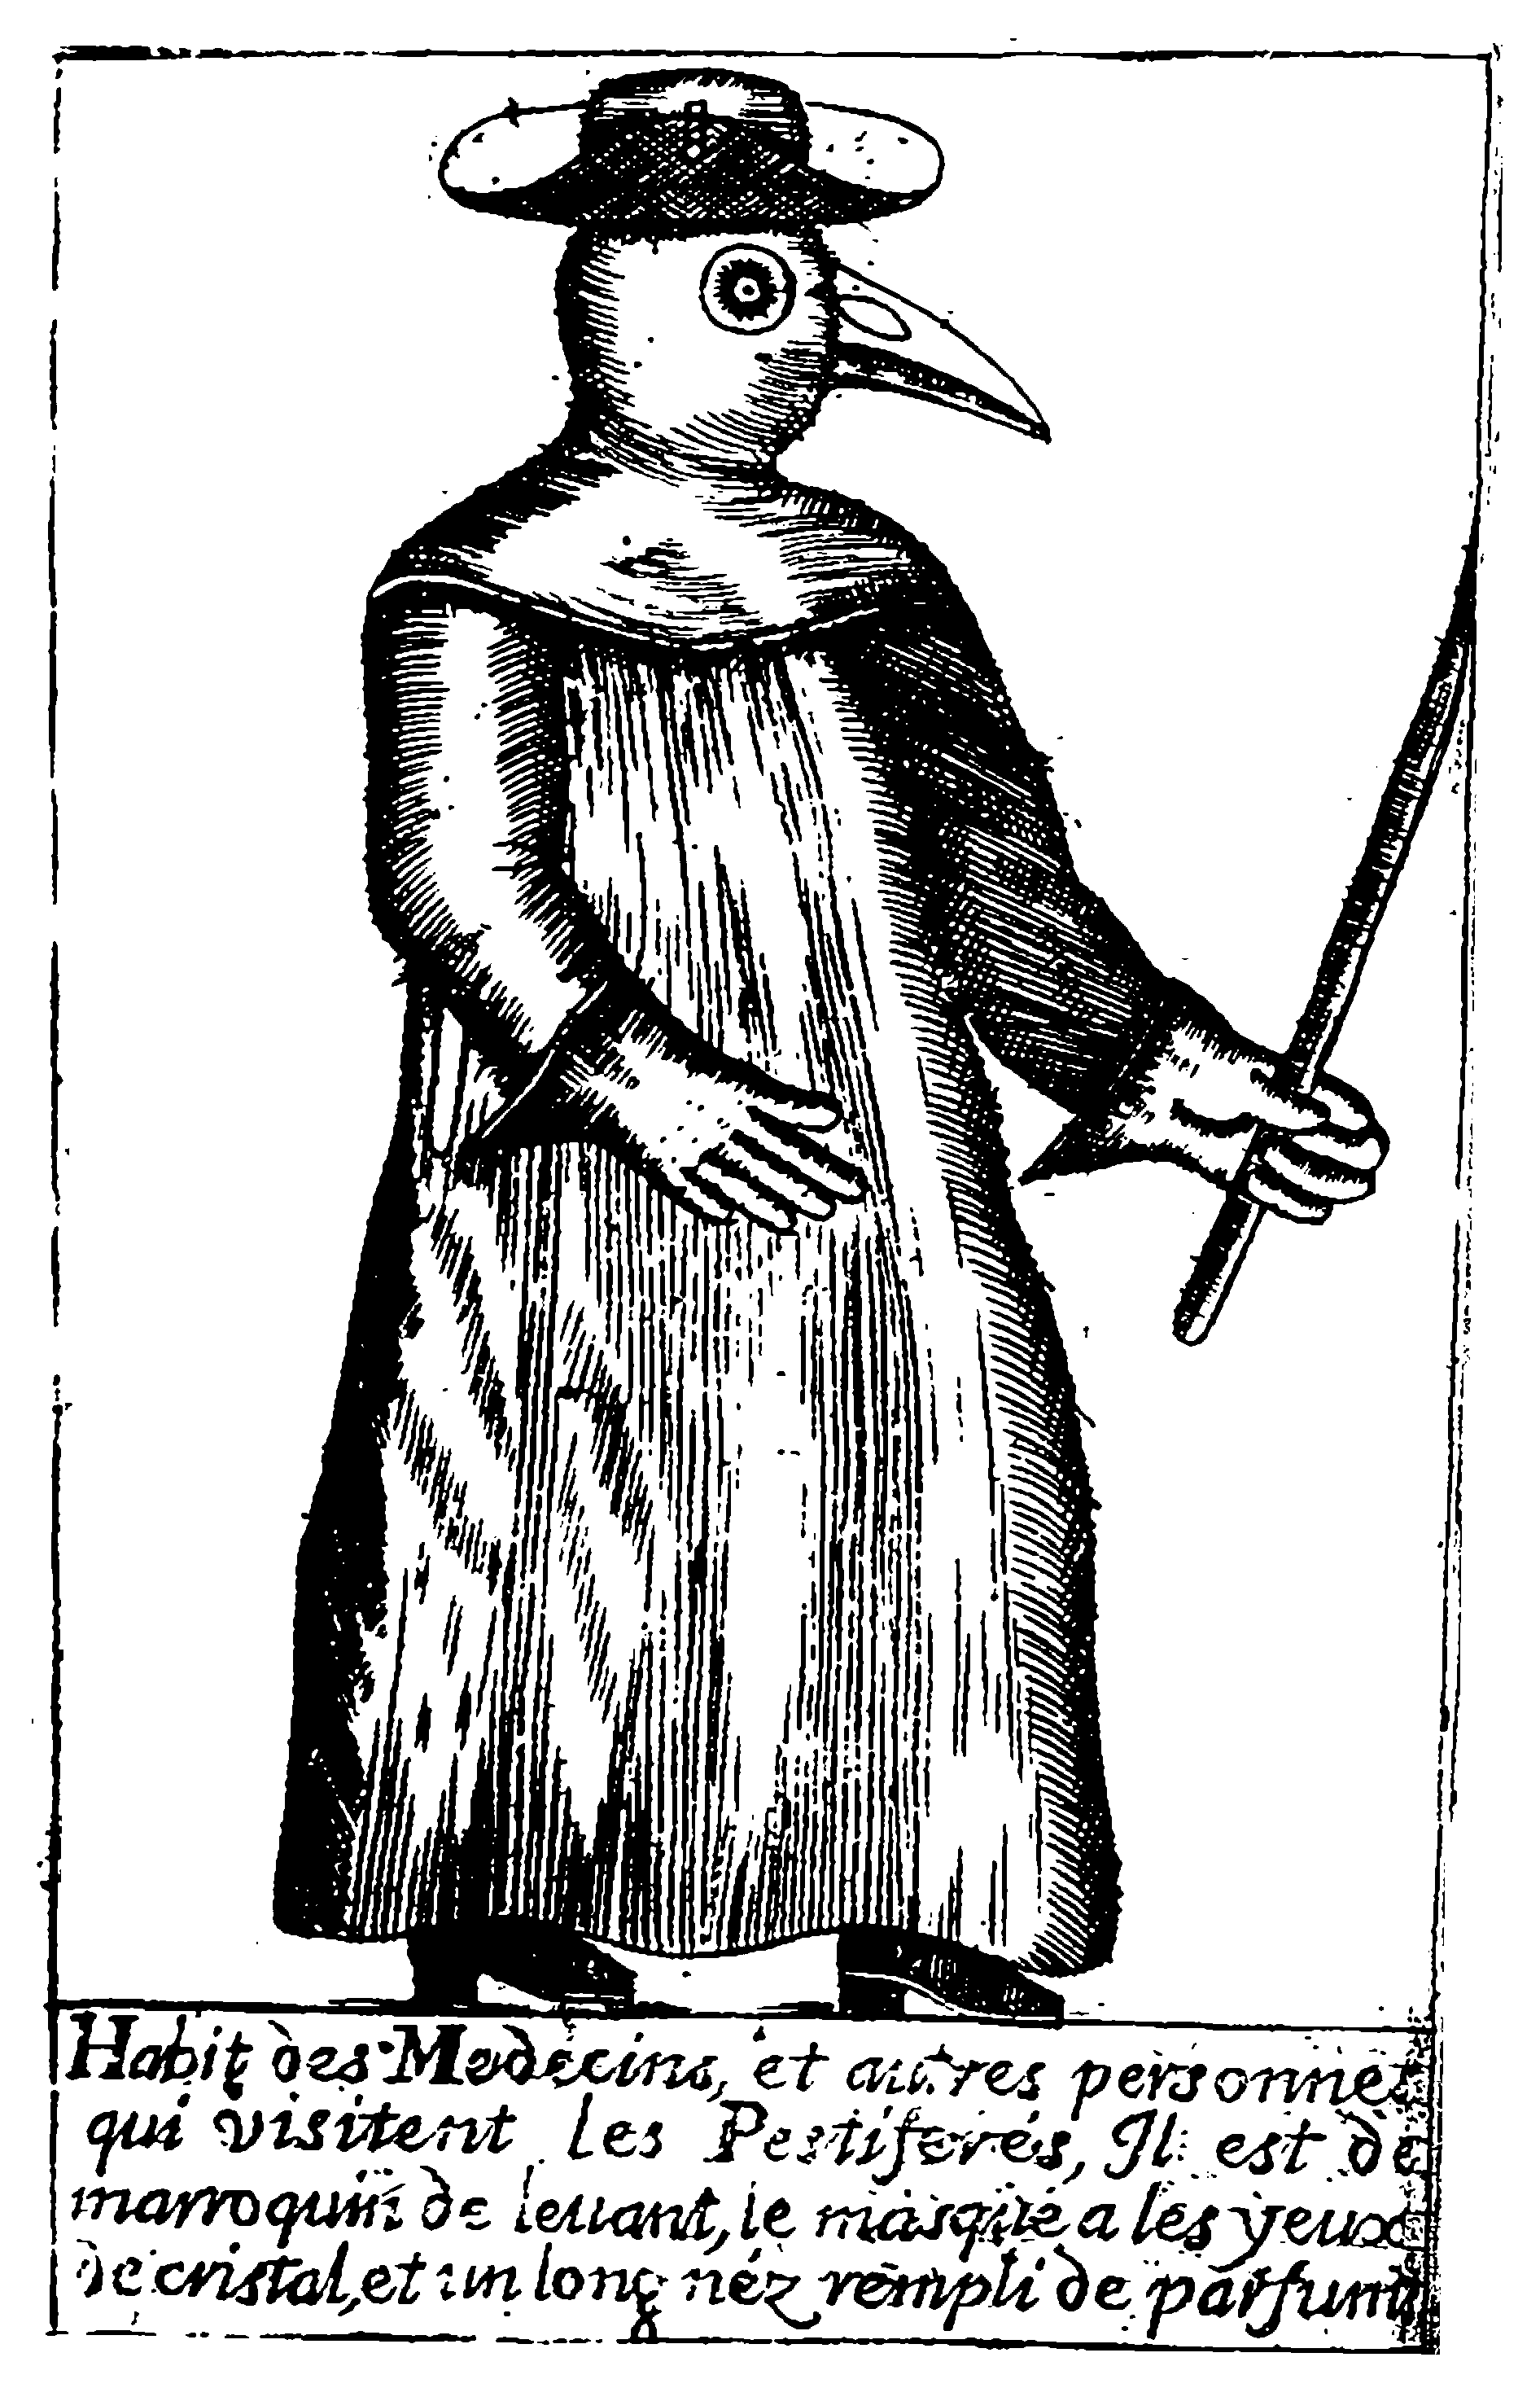 A Plague Doctor – from Jean-Jacques Manget, Traité de la peste (1721)